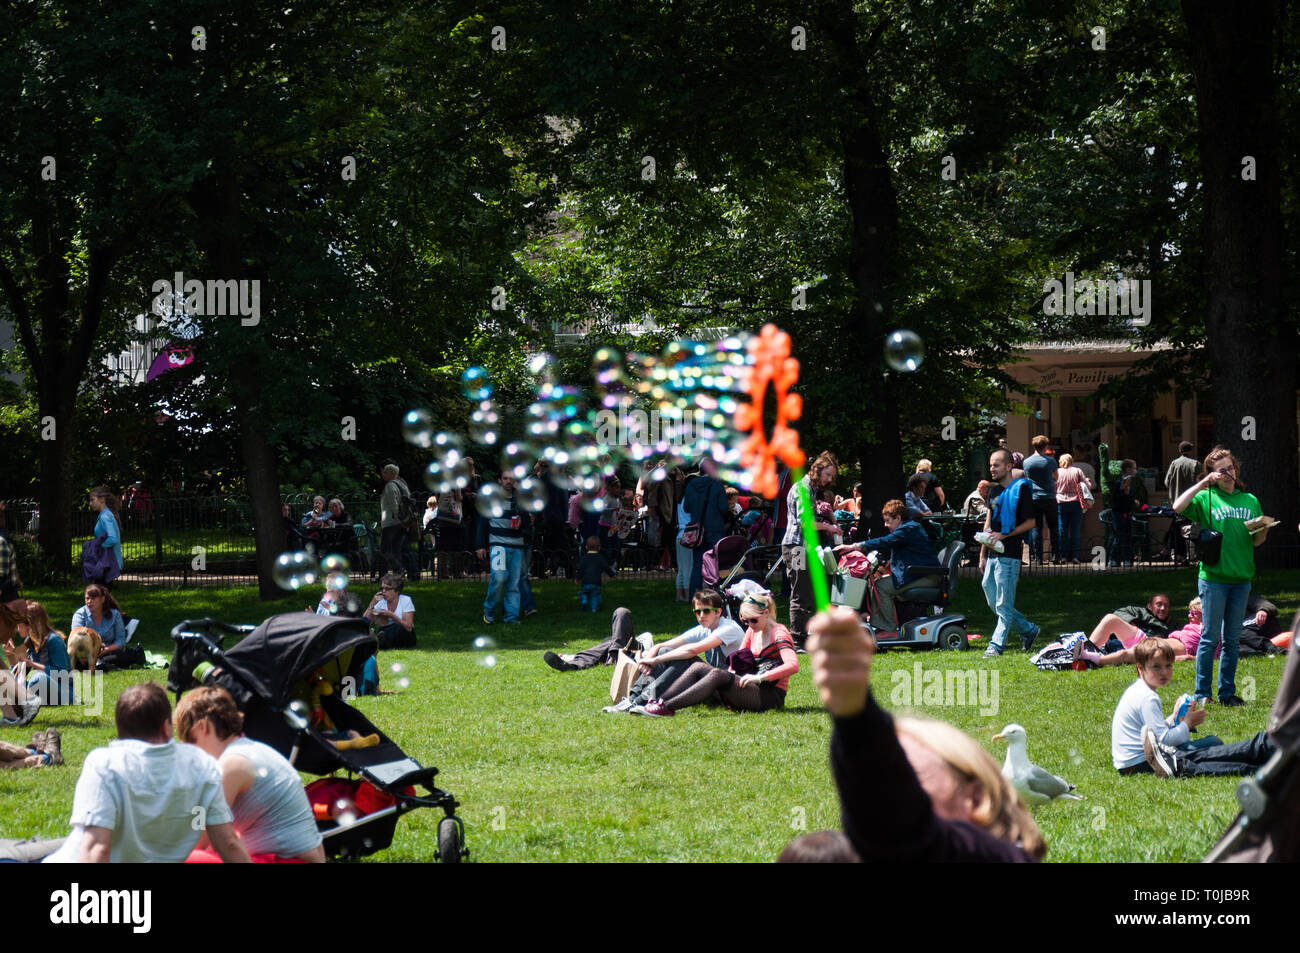 People sitting in park enjoying day out on warm sunny summer day at the Royal Pavilion Gardens in Brighton UK - Stock Image